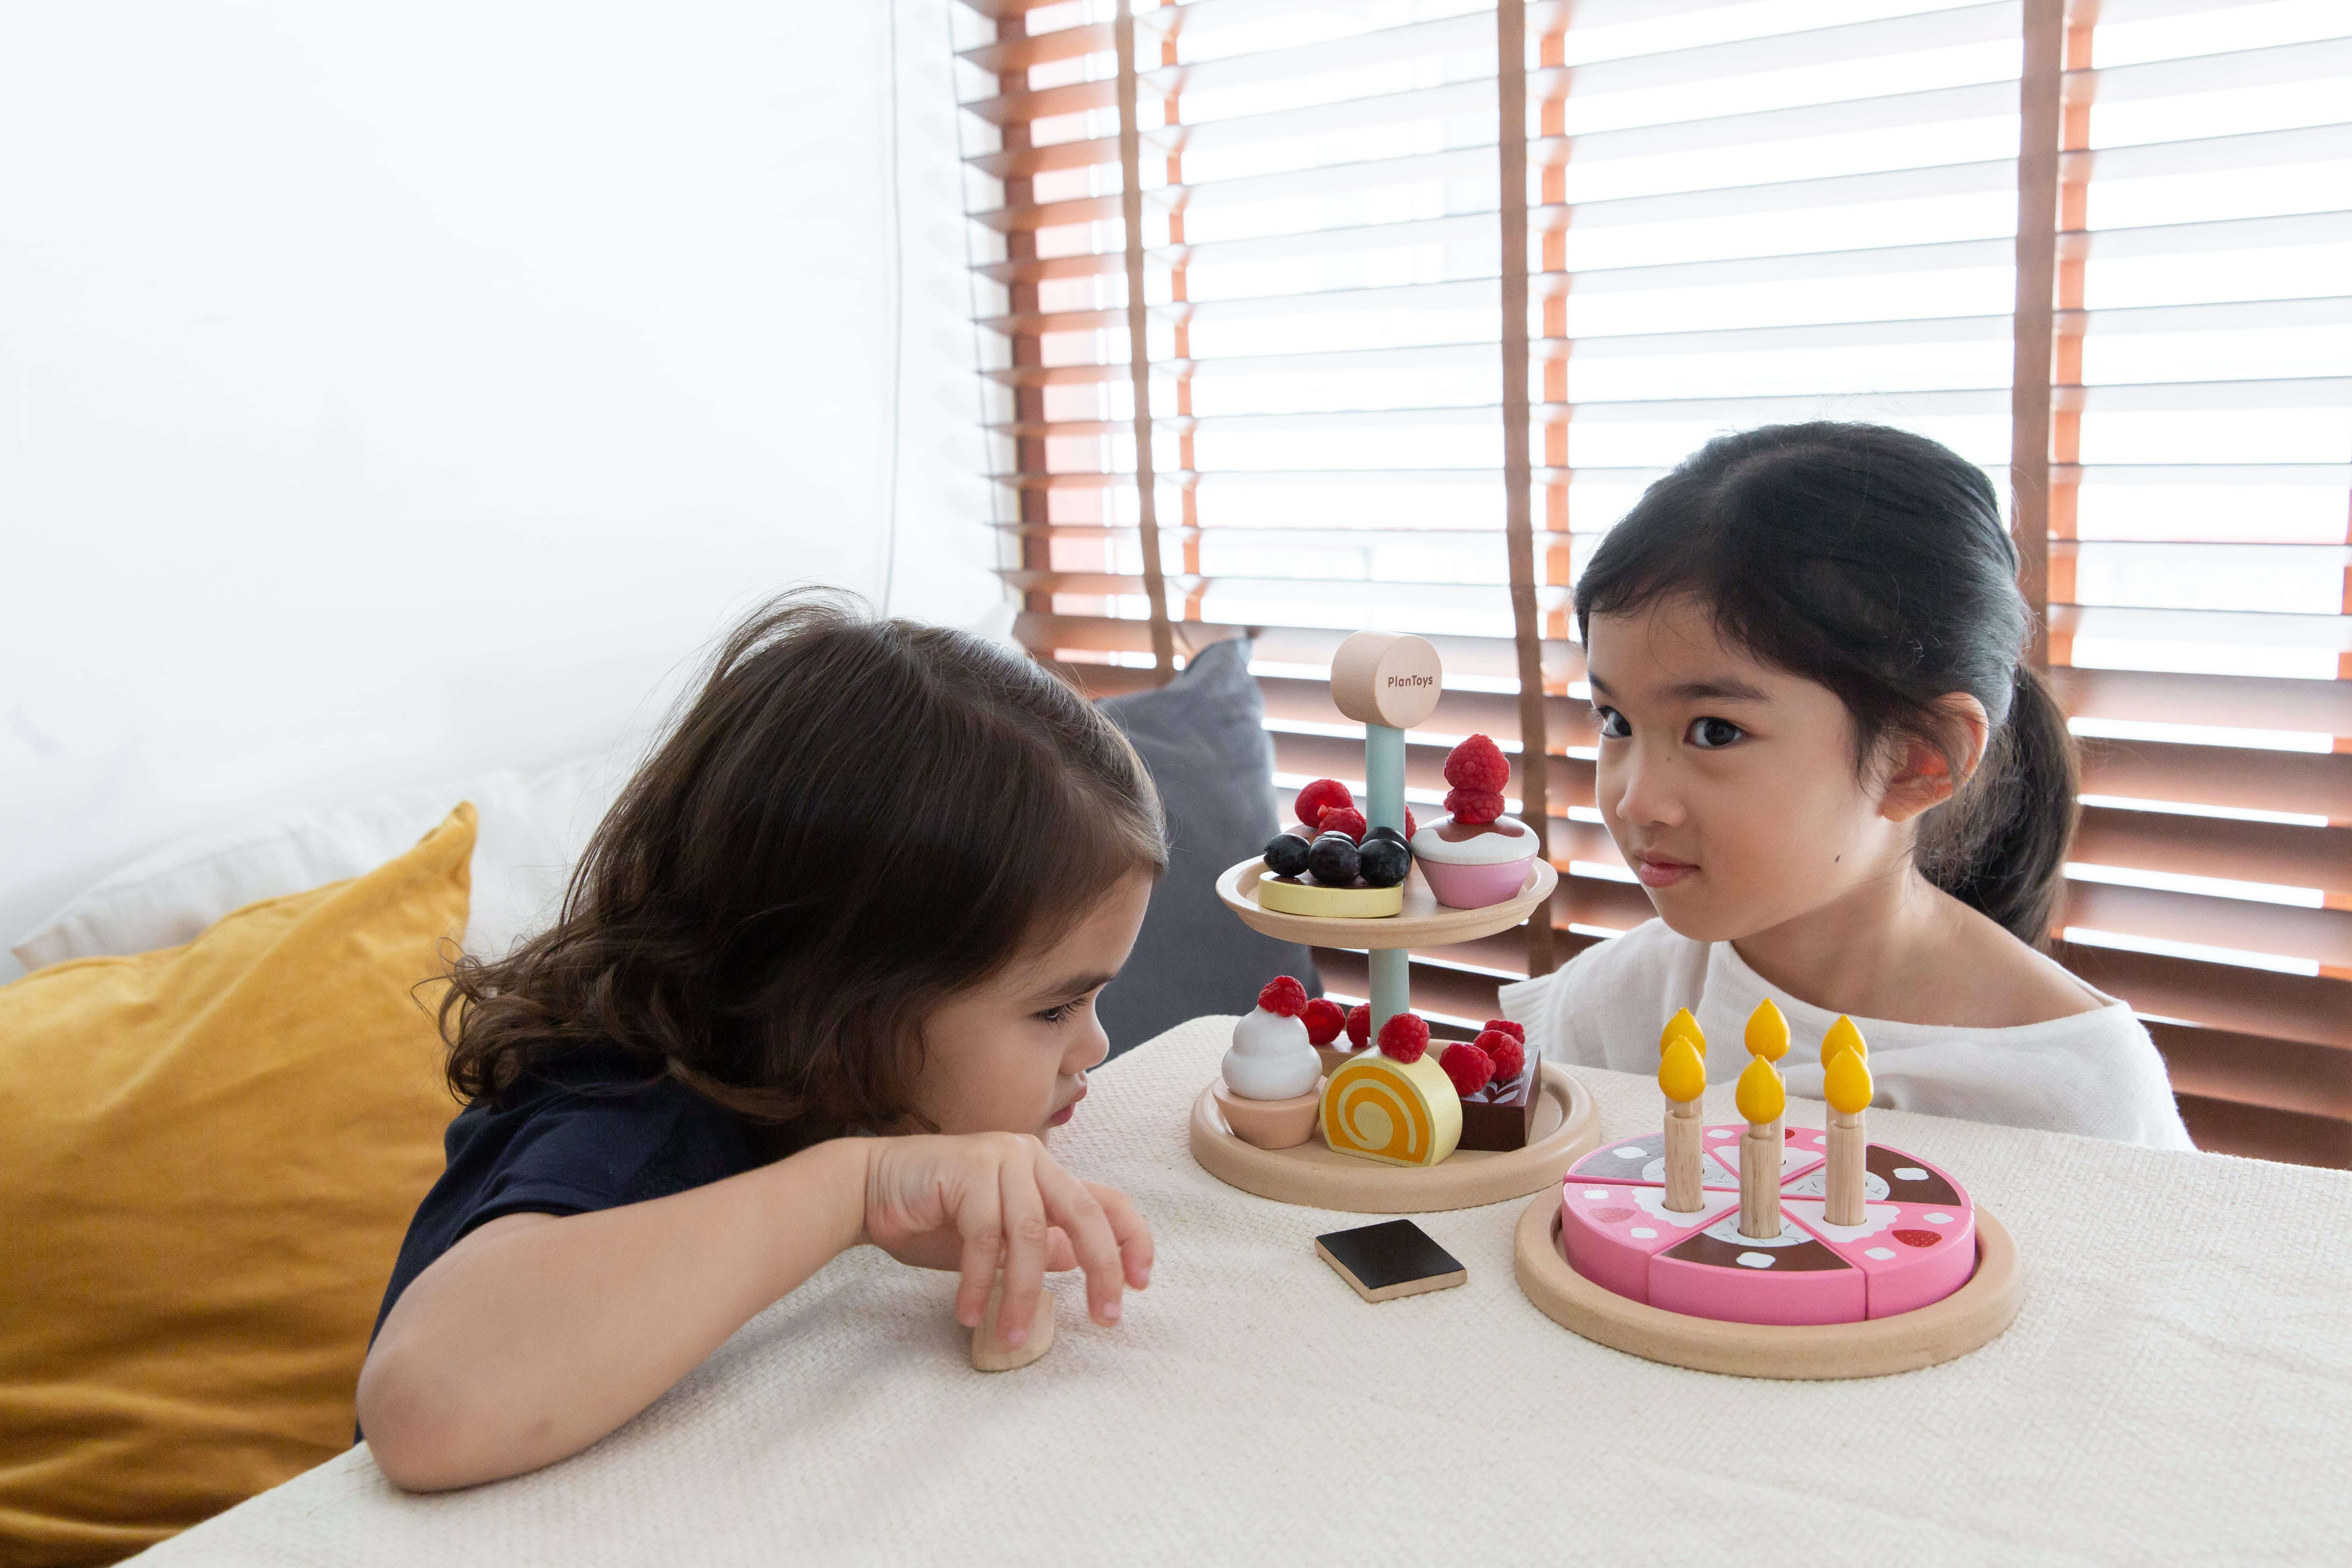 3489_PlanToys_BAKERY_STAND_SET_Pretend_Play_Imagination_Language_and_Communications_Social_Coordination_Emotion_Fine_Motor_2yrs_Wooden_toys_Education_toys_Safety_Toys_Non-toxic_5.jpg